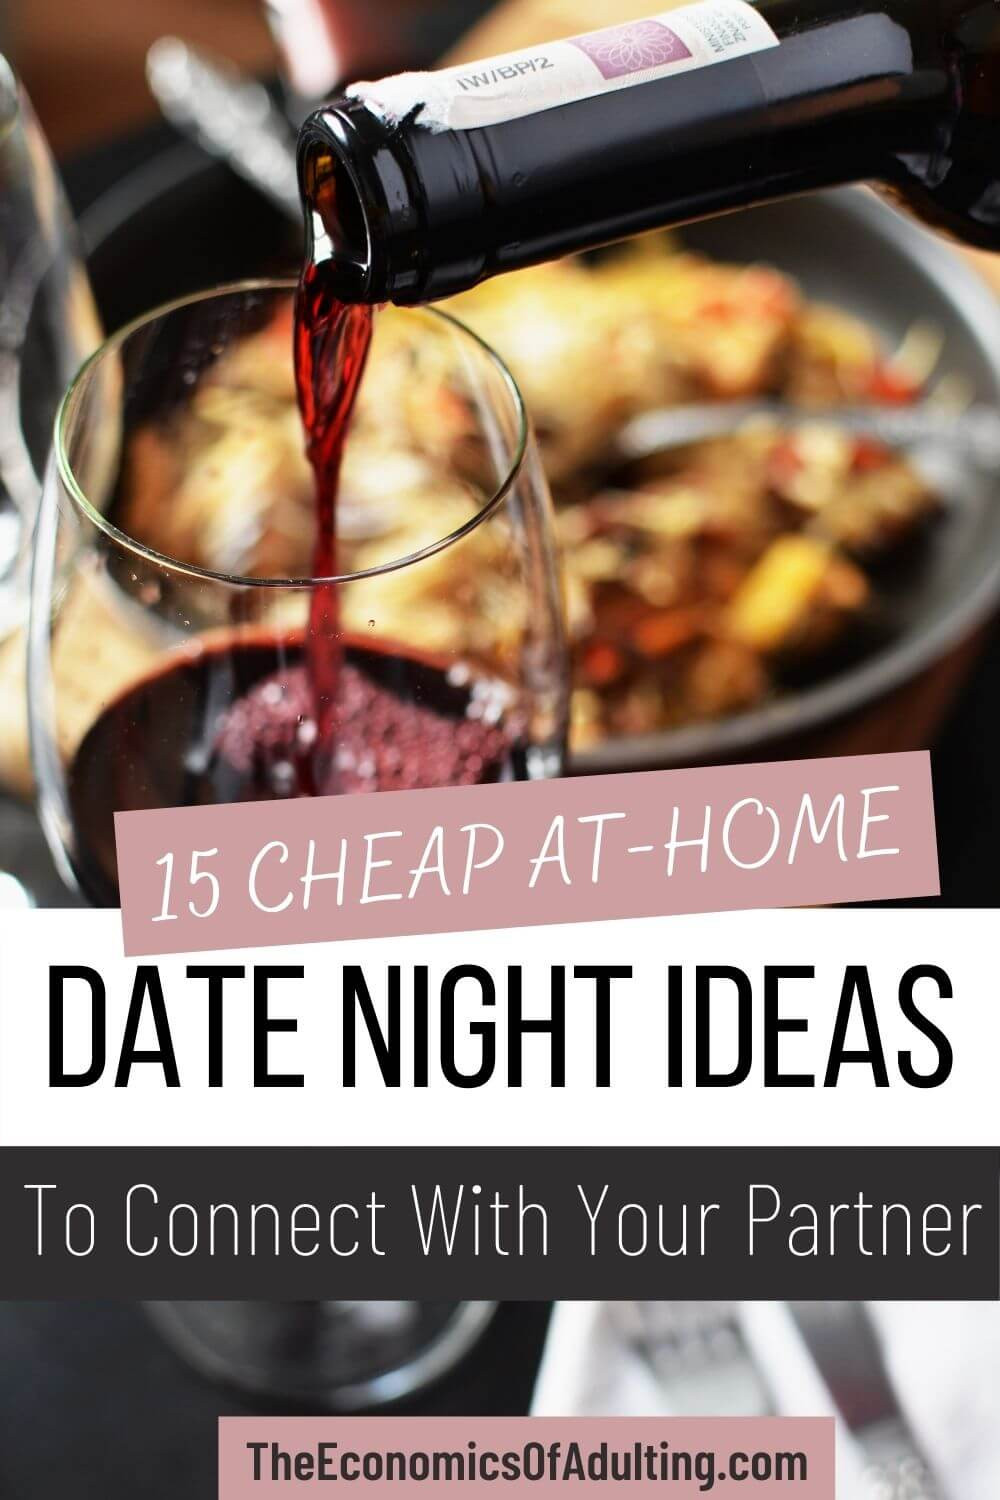 An image of someone pouring red wine into a wine glass, with the headline '5 Cheap At-Home Date Night Ideas To Connect With Your Partner'